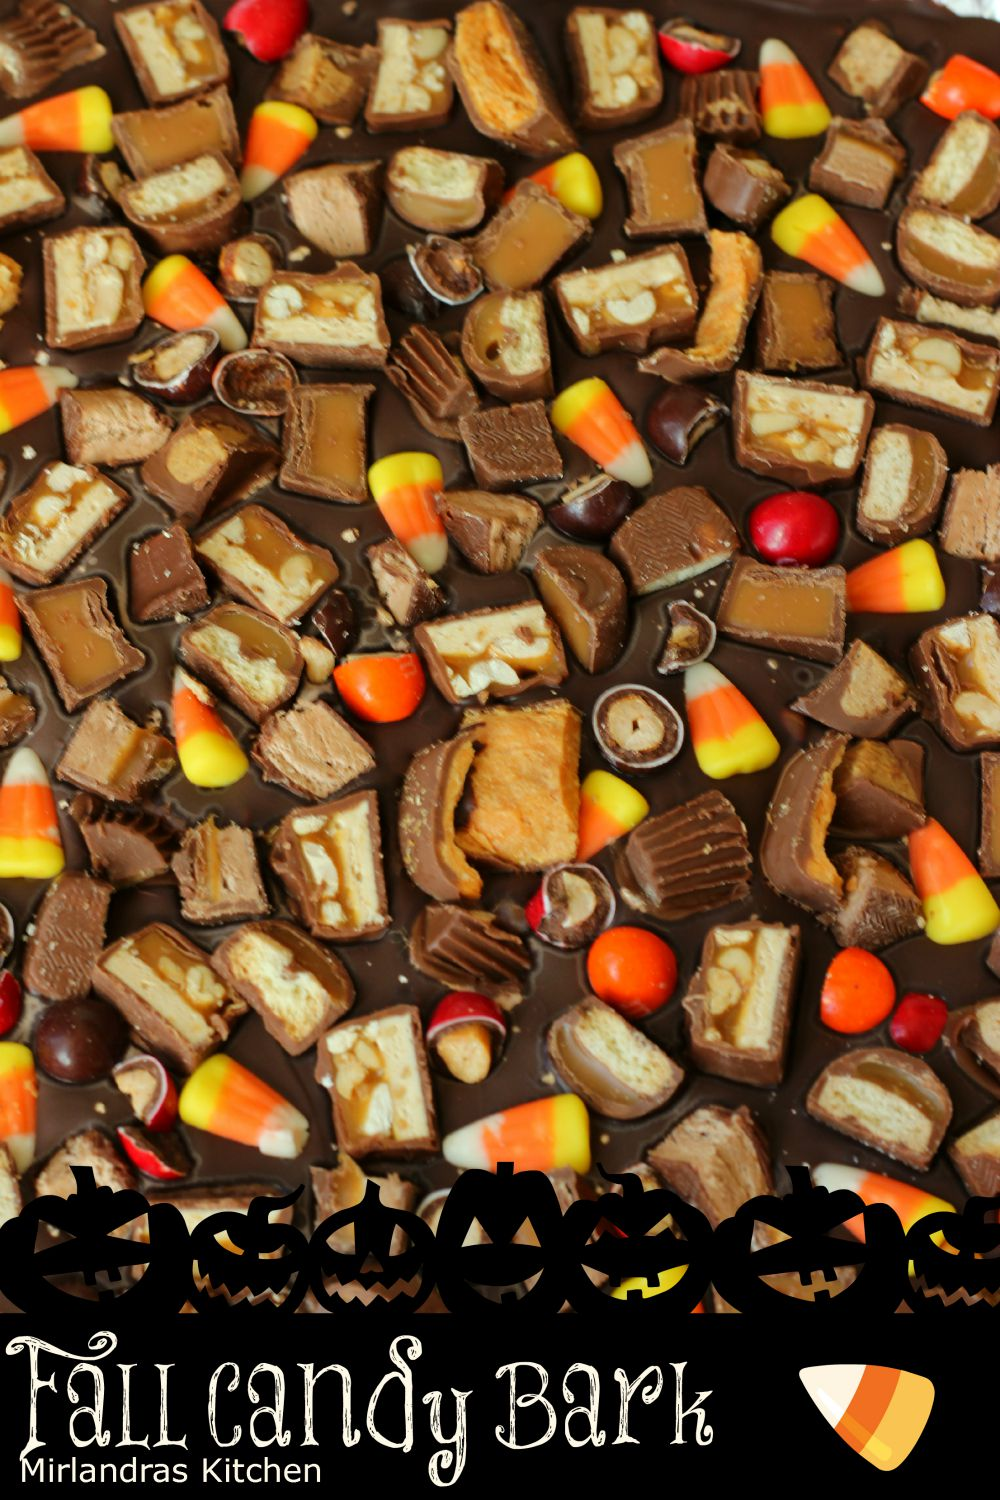 This Fall Candy Bark is the a truly over the top sugar rush perfect for Halloween time when we all have a little too much sugar. Rich milk chocolate is customized with your favorite candy bars and candy corn. No candy lover can resist! It is also easy to make and a good kid project.